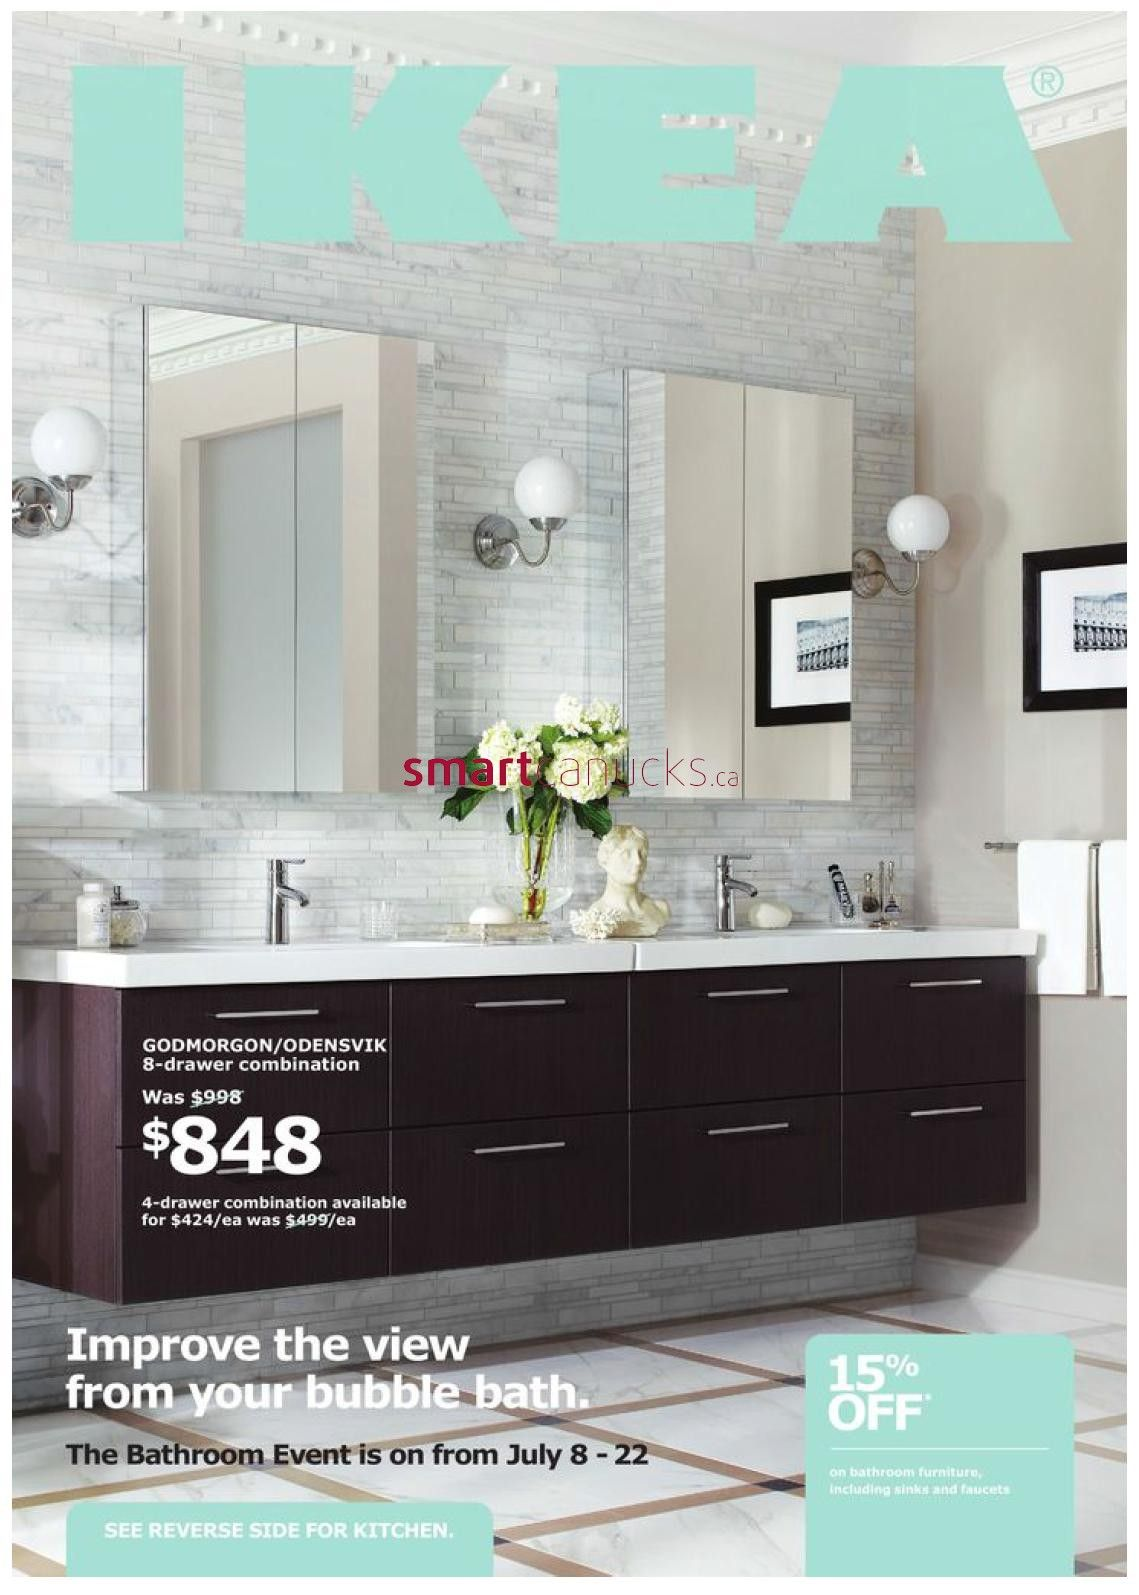 ikea godmorgon odensvik sink cabinets with four drawers and lillholmen wall lamps and dalskar bath faucets and godmorgon mirror cabinets with two